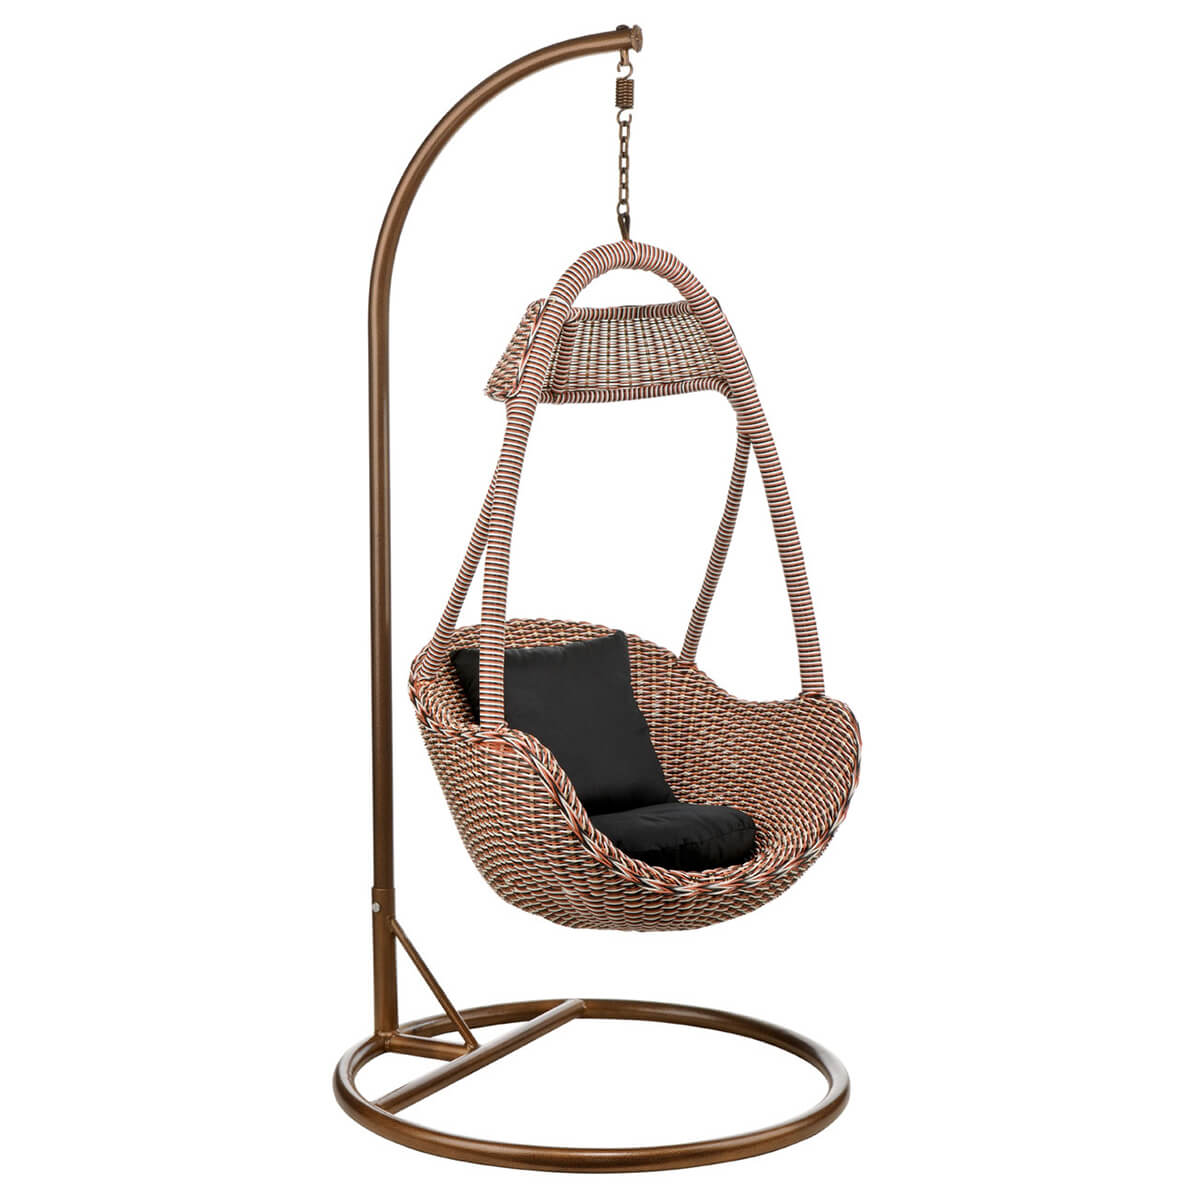 Hanging Rattan Chair Basket Hanging Chair Natural Rattan Contemporary Living